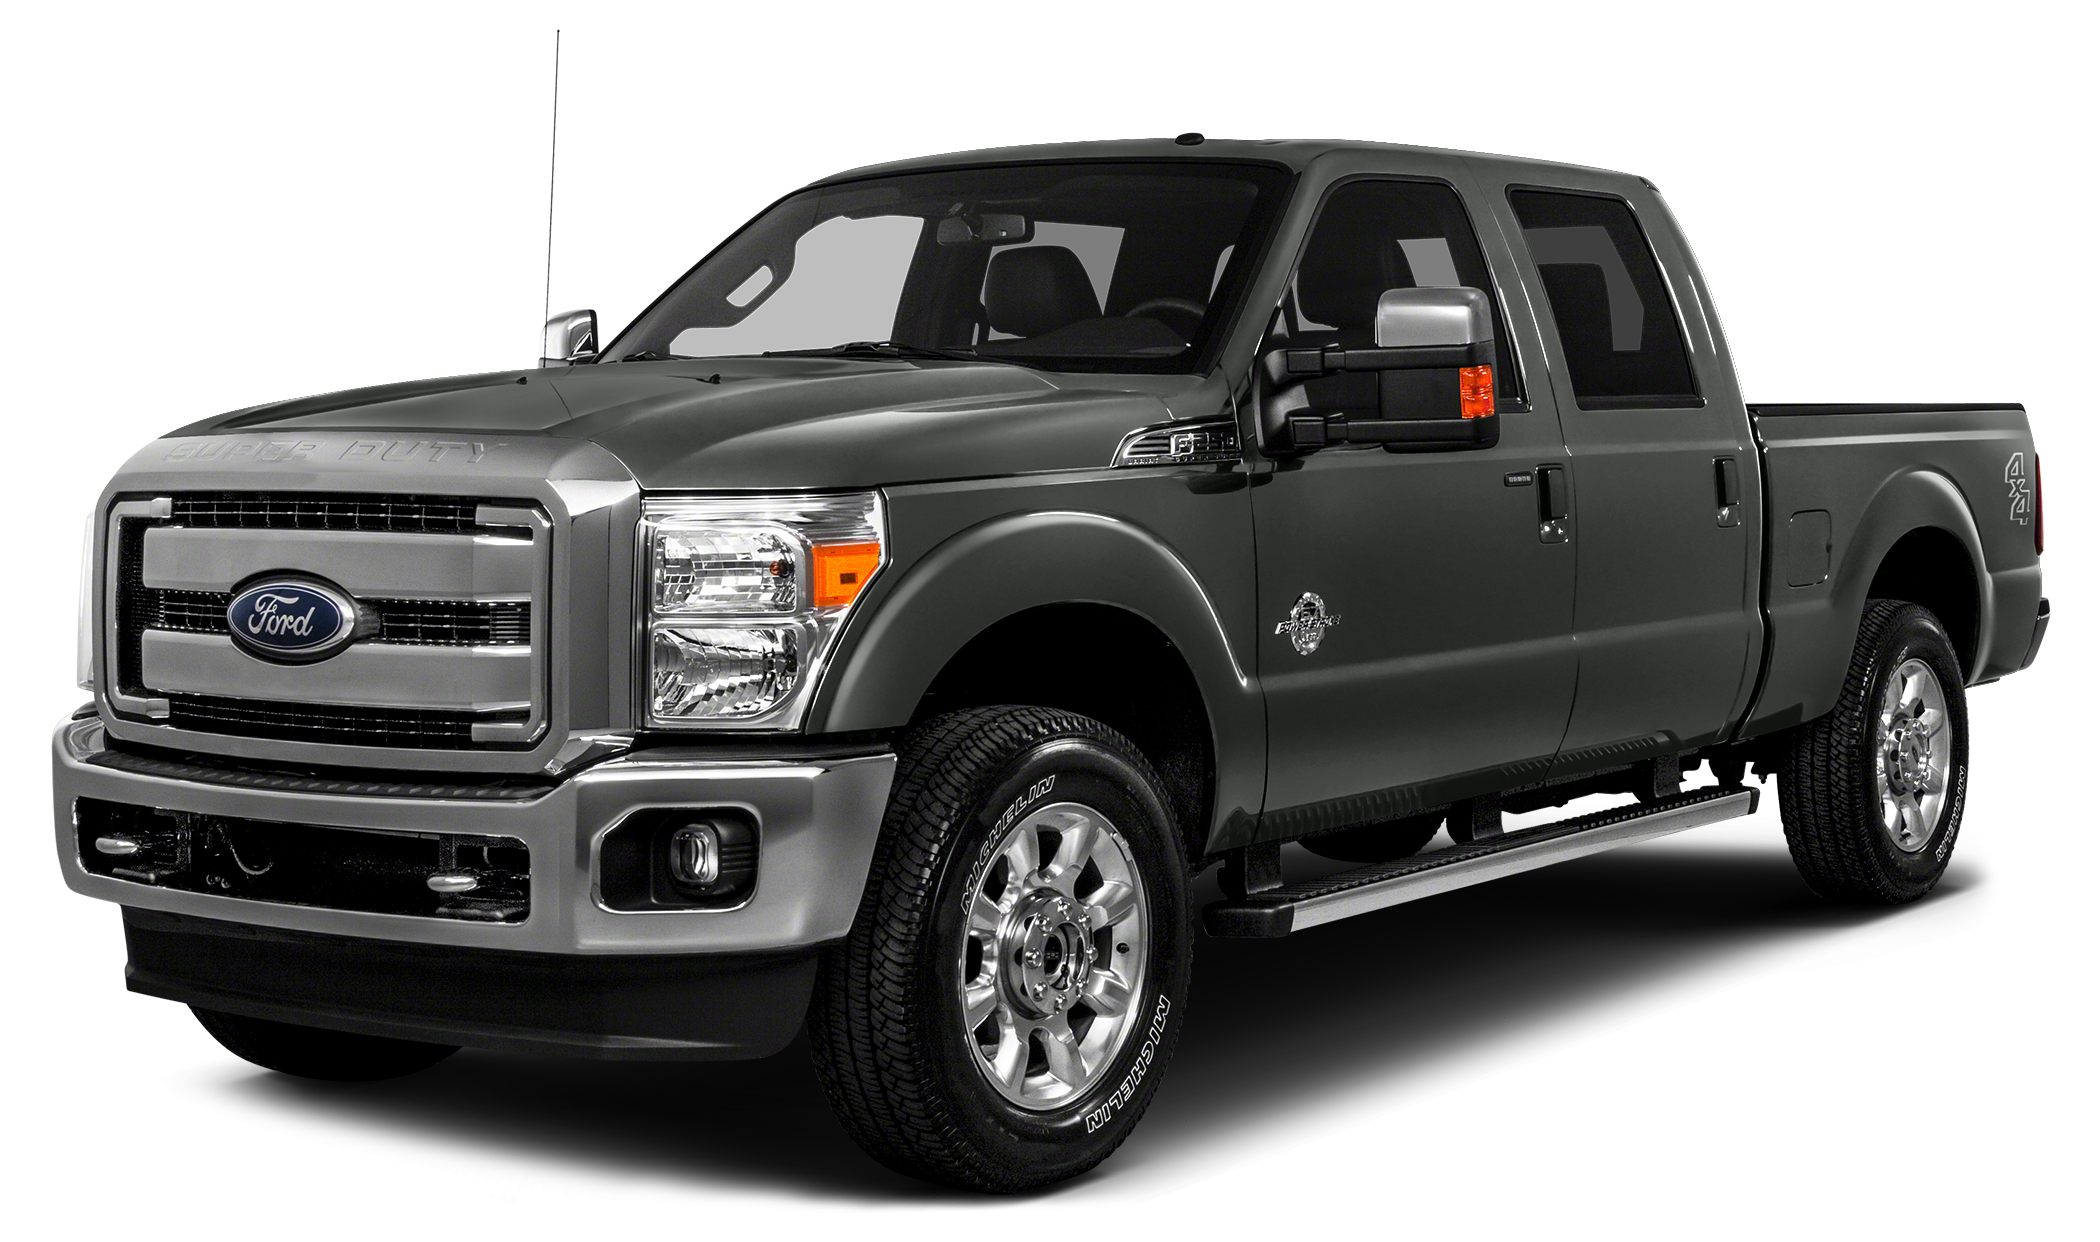 2016 Ford F-250 Super Duty You know your business and what it takes to grow its bottom line like